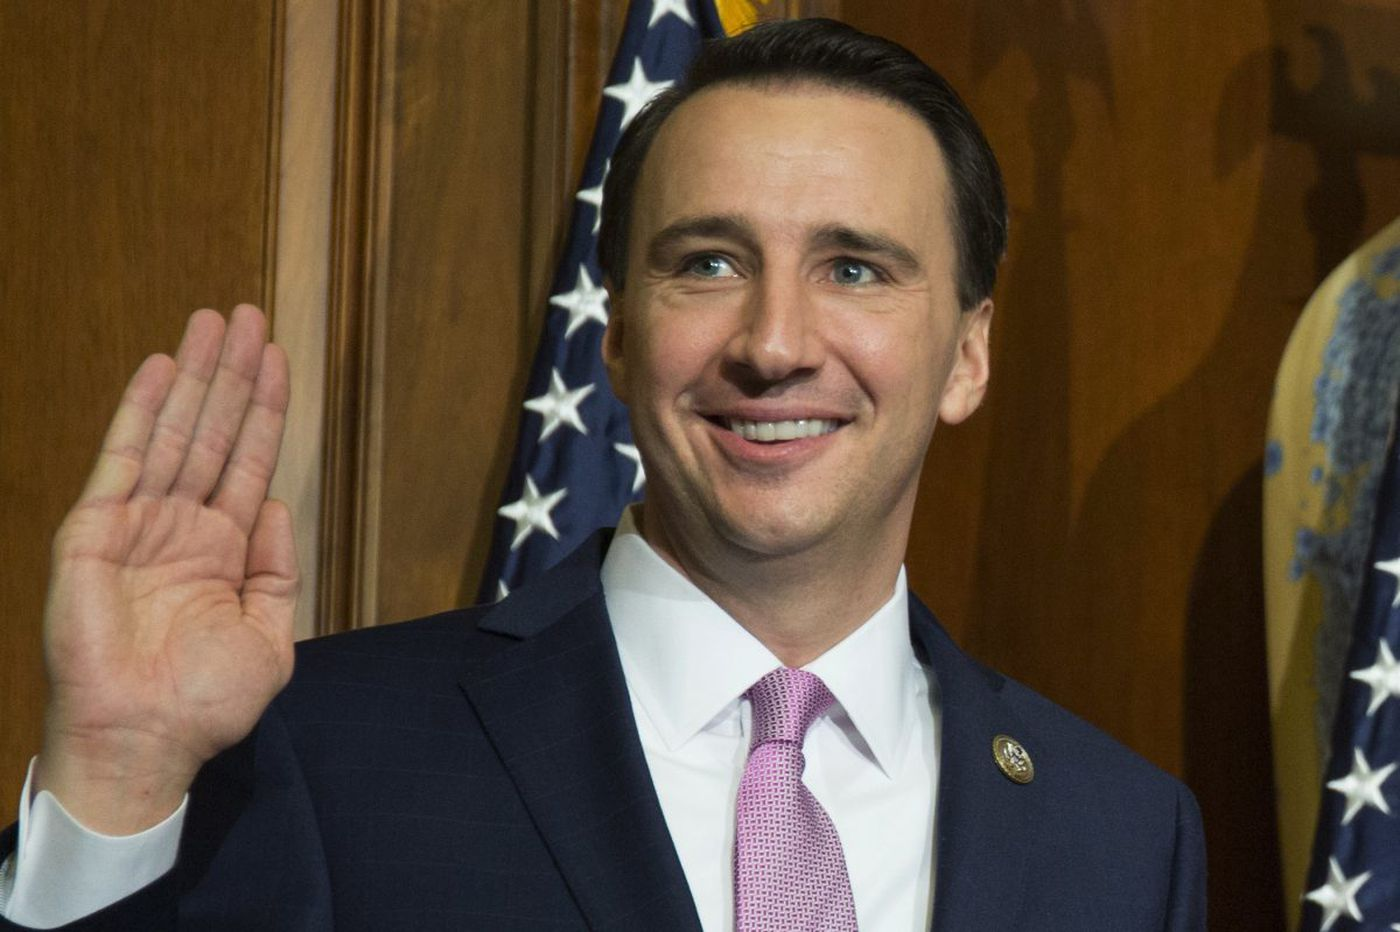 'I don't know the last time I've been so angry' - Rep. Ryan Costello formally withdraws from primary ballot